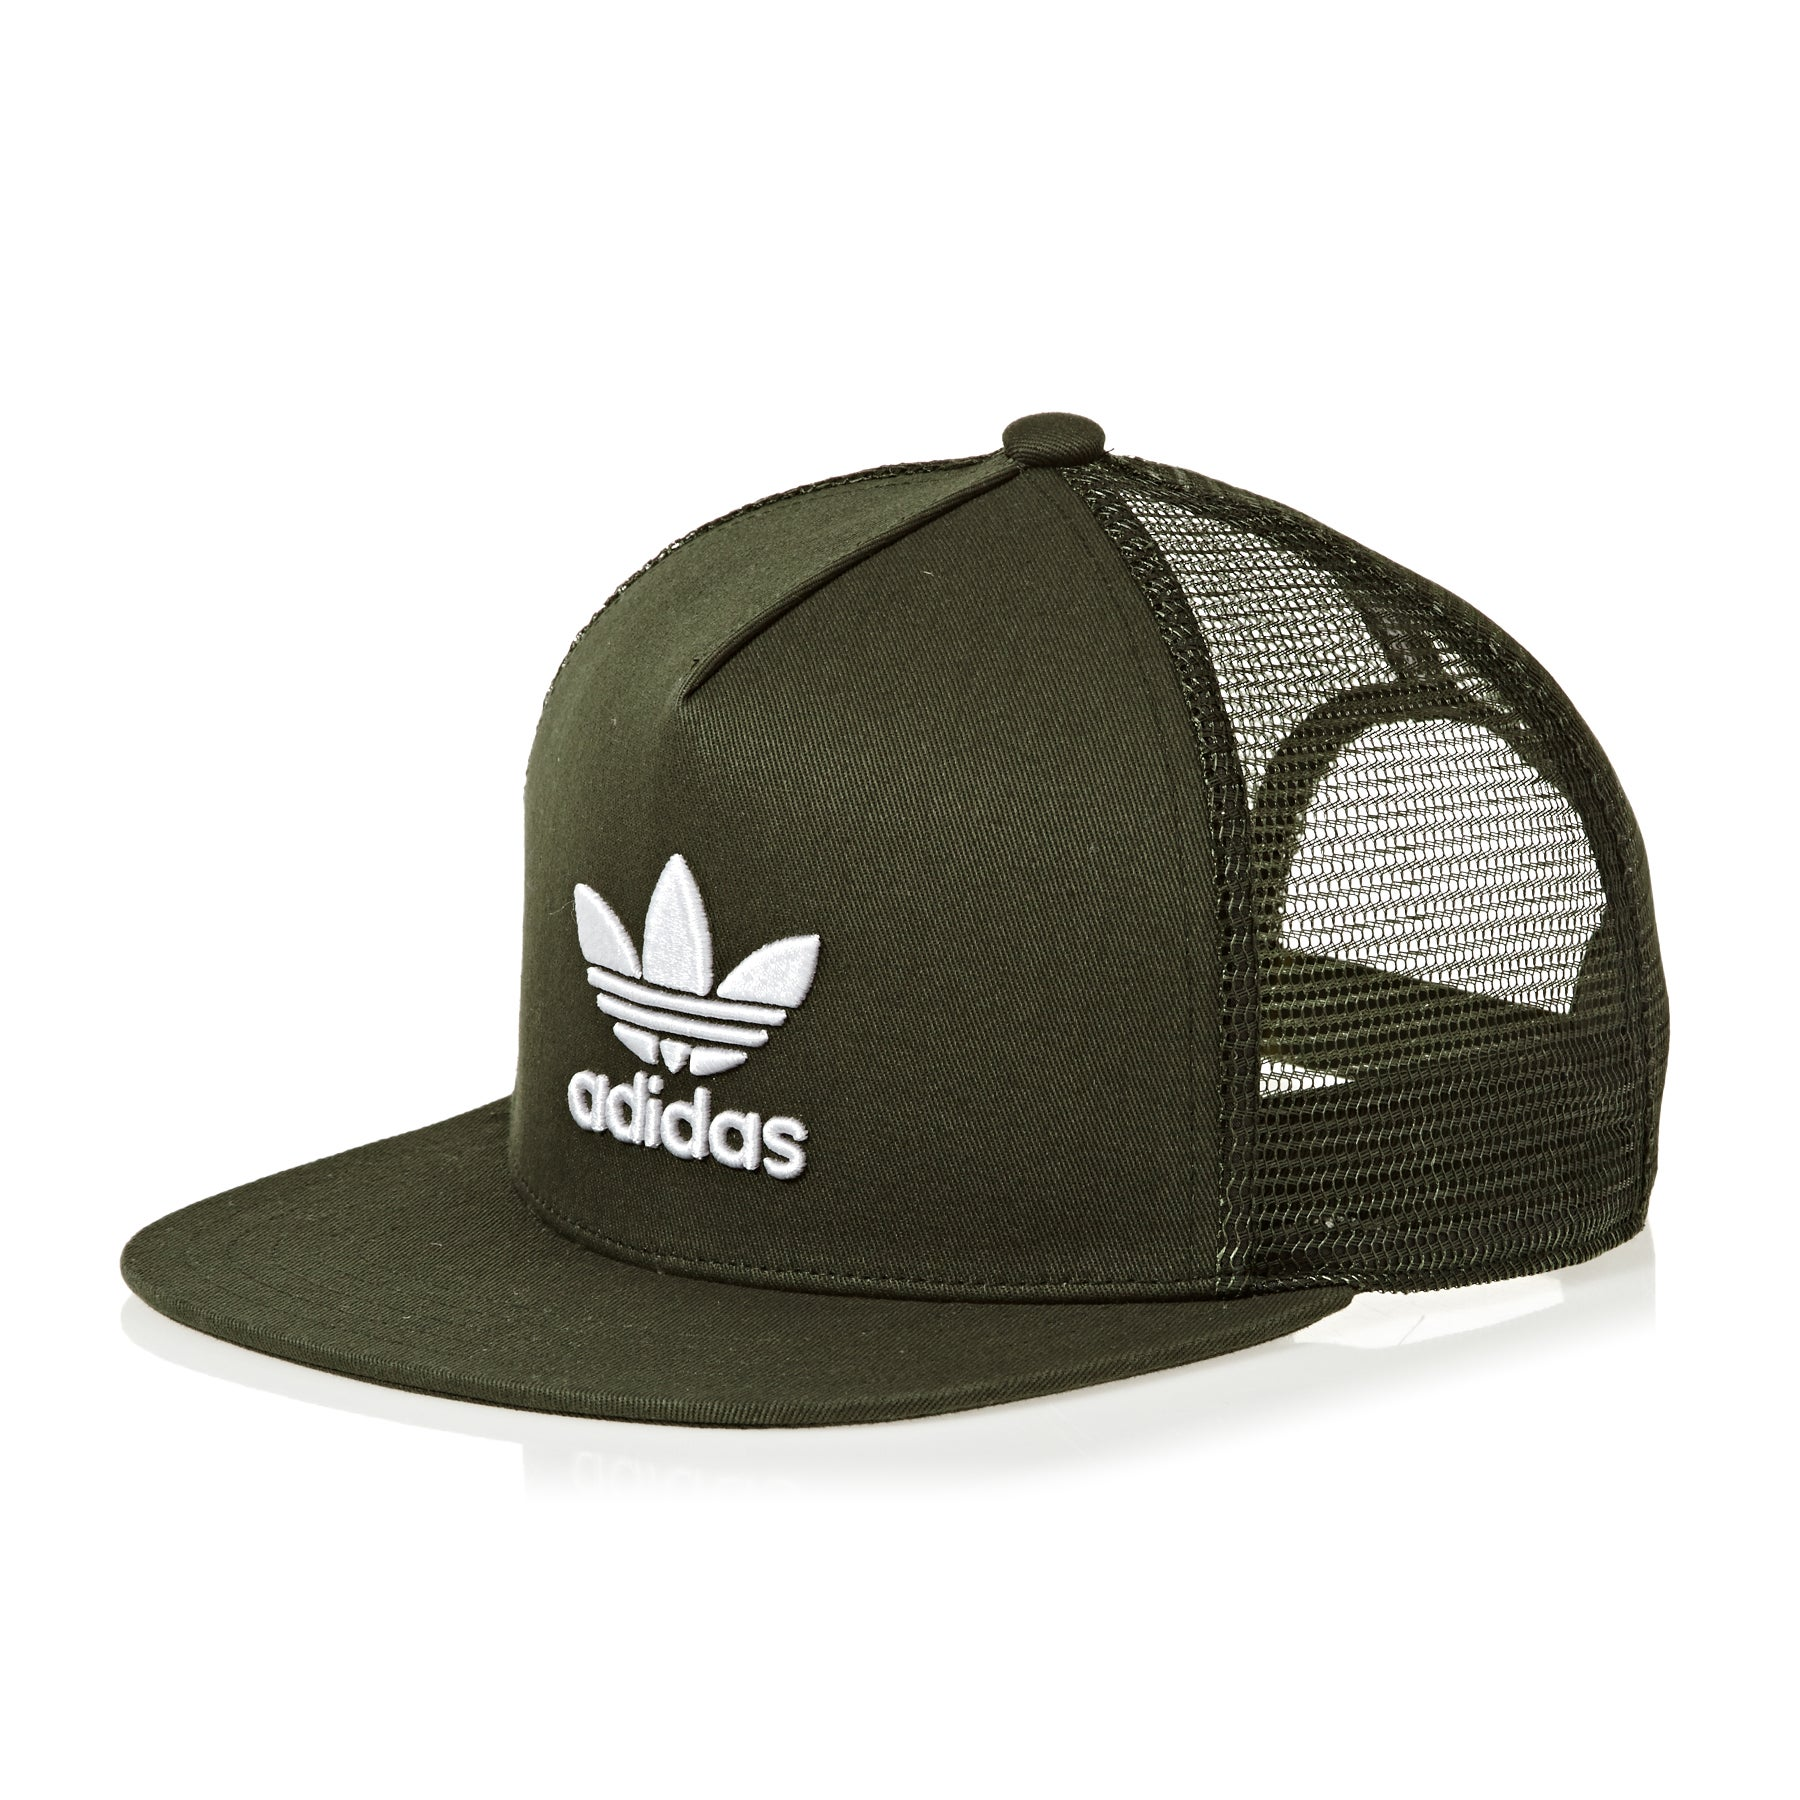 ea8535b2d80 Adidas Originals Trefoil Trucker Kids Cap available from Surfdome